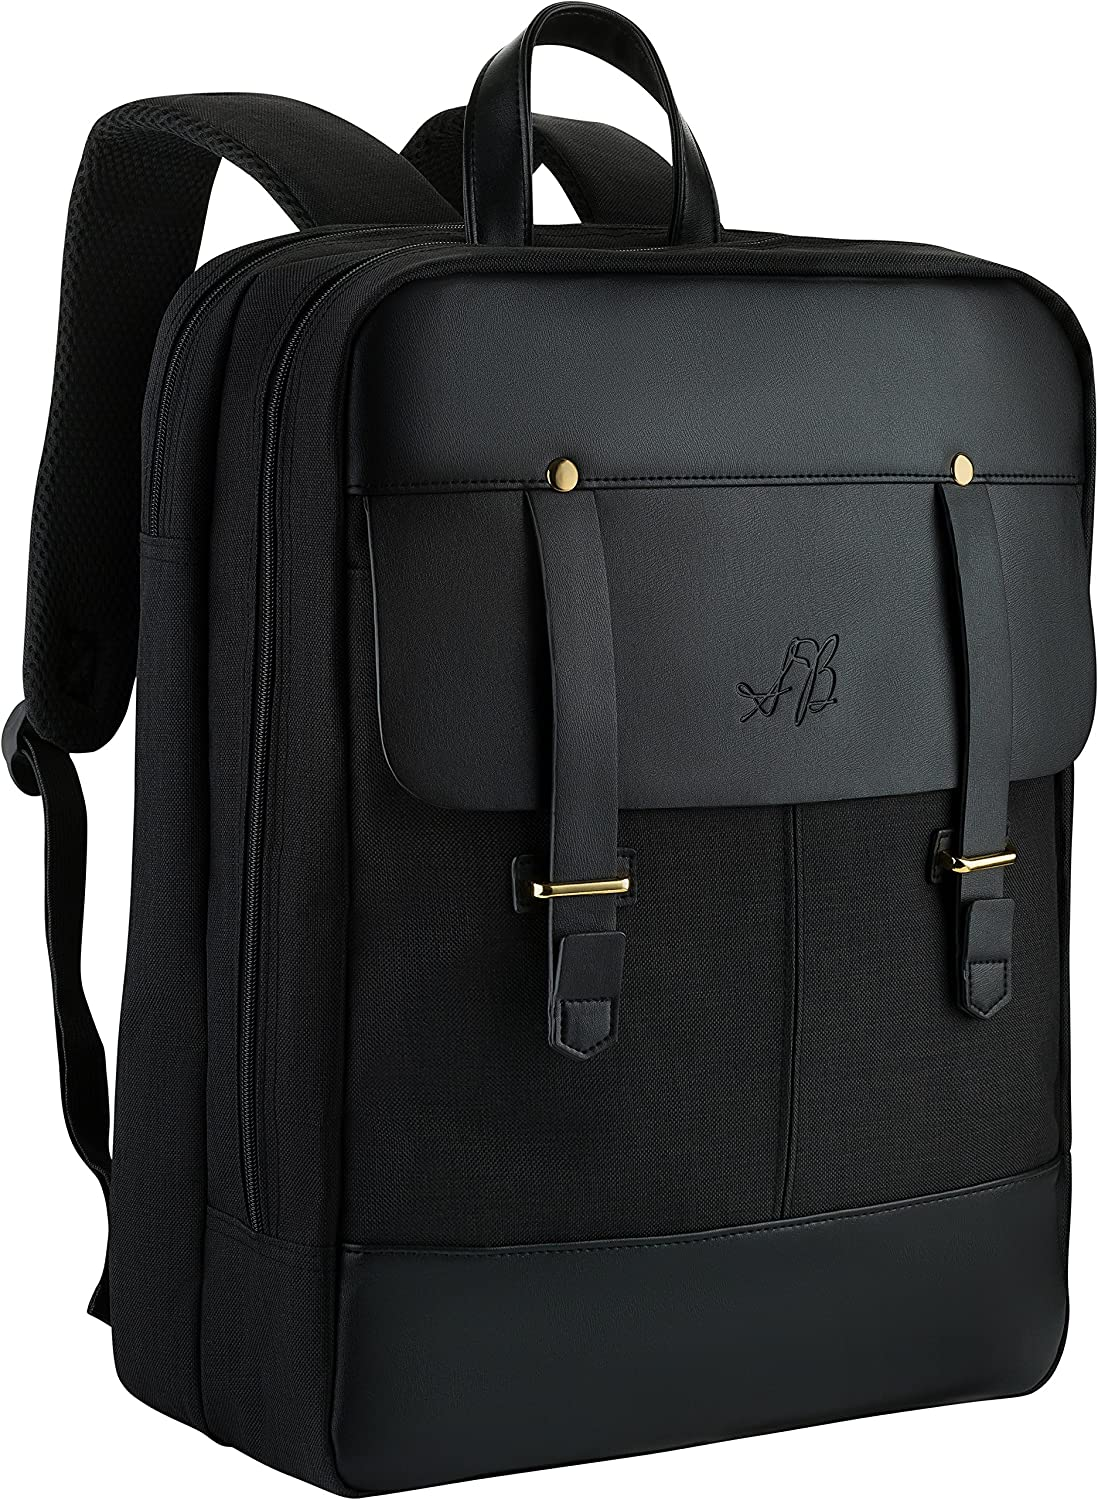 b820a22c25 Laptop Backpack - 18